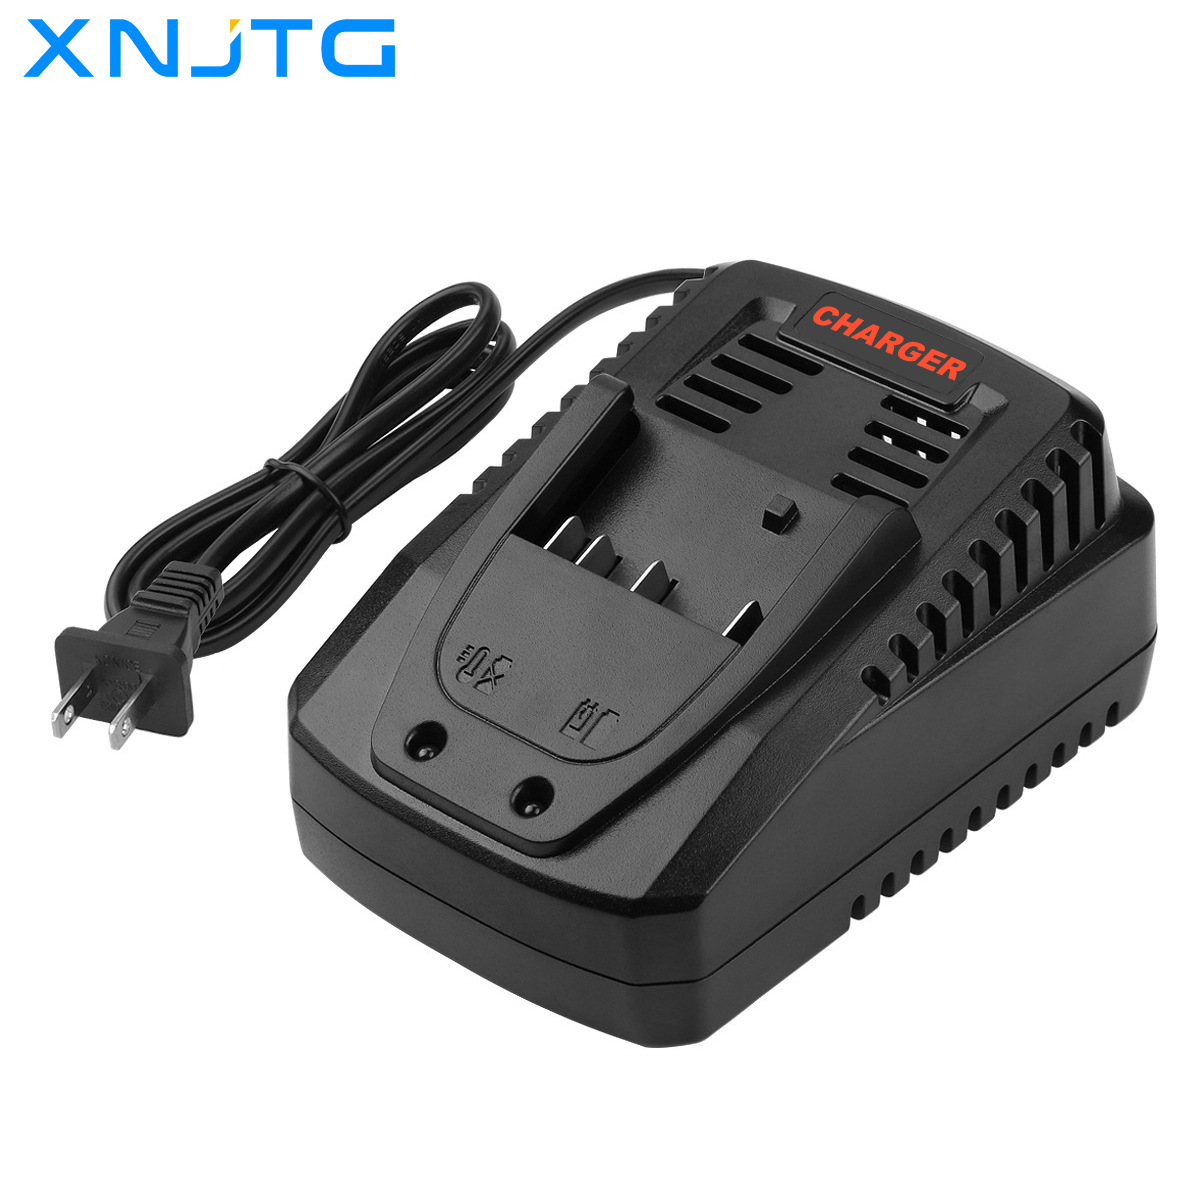 XNJTG Suitable for Bosch charger BOSCH 14.4V, 18V power tool lithium battery 3A fast charger